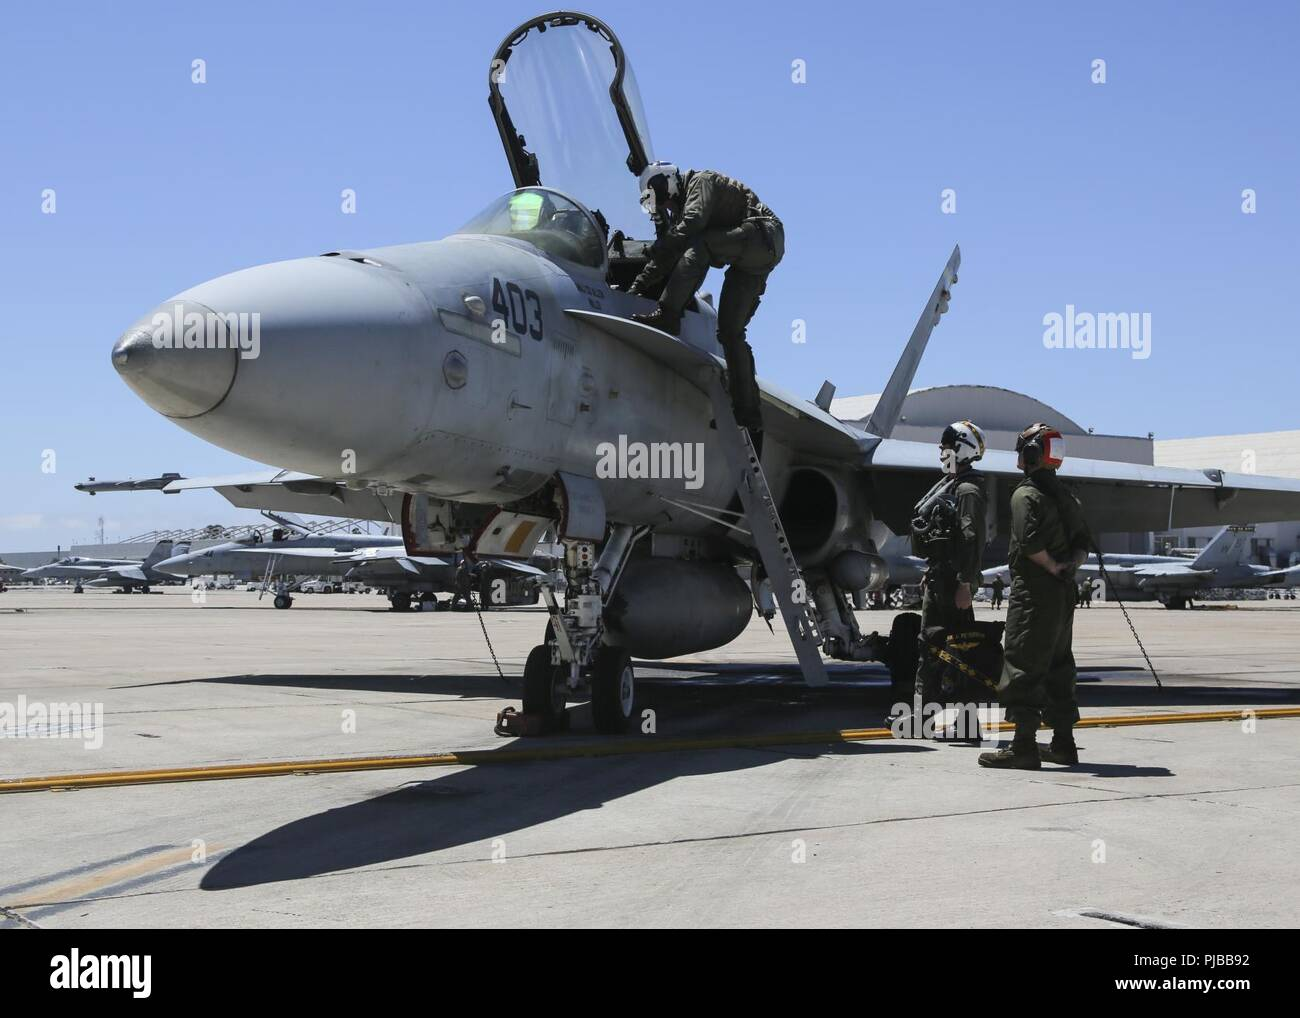 Maj. Gen. Mark R. Wise, the commanding general for 3rd Marine Aircraft Wing, climbs into an F/A-18C Hornet, during his final flight on Marine Corps Air Station Miramar, San Diego, Calif., July 02. Maj. Gen Wise flew for the last time as the commanding general of 3rd MAW. Stock Photo